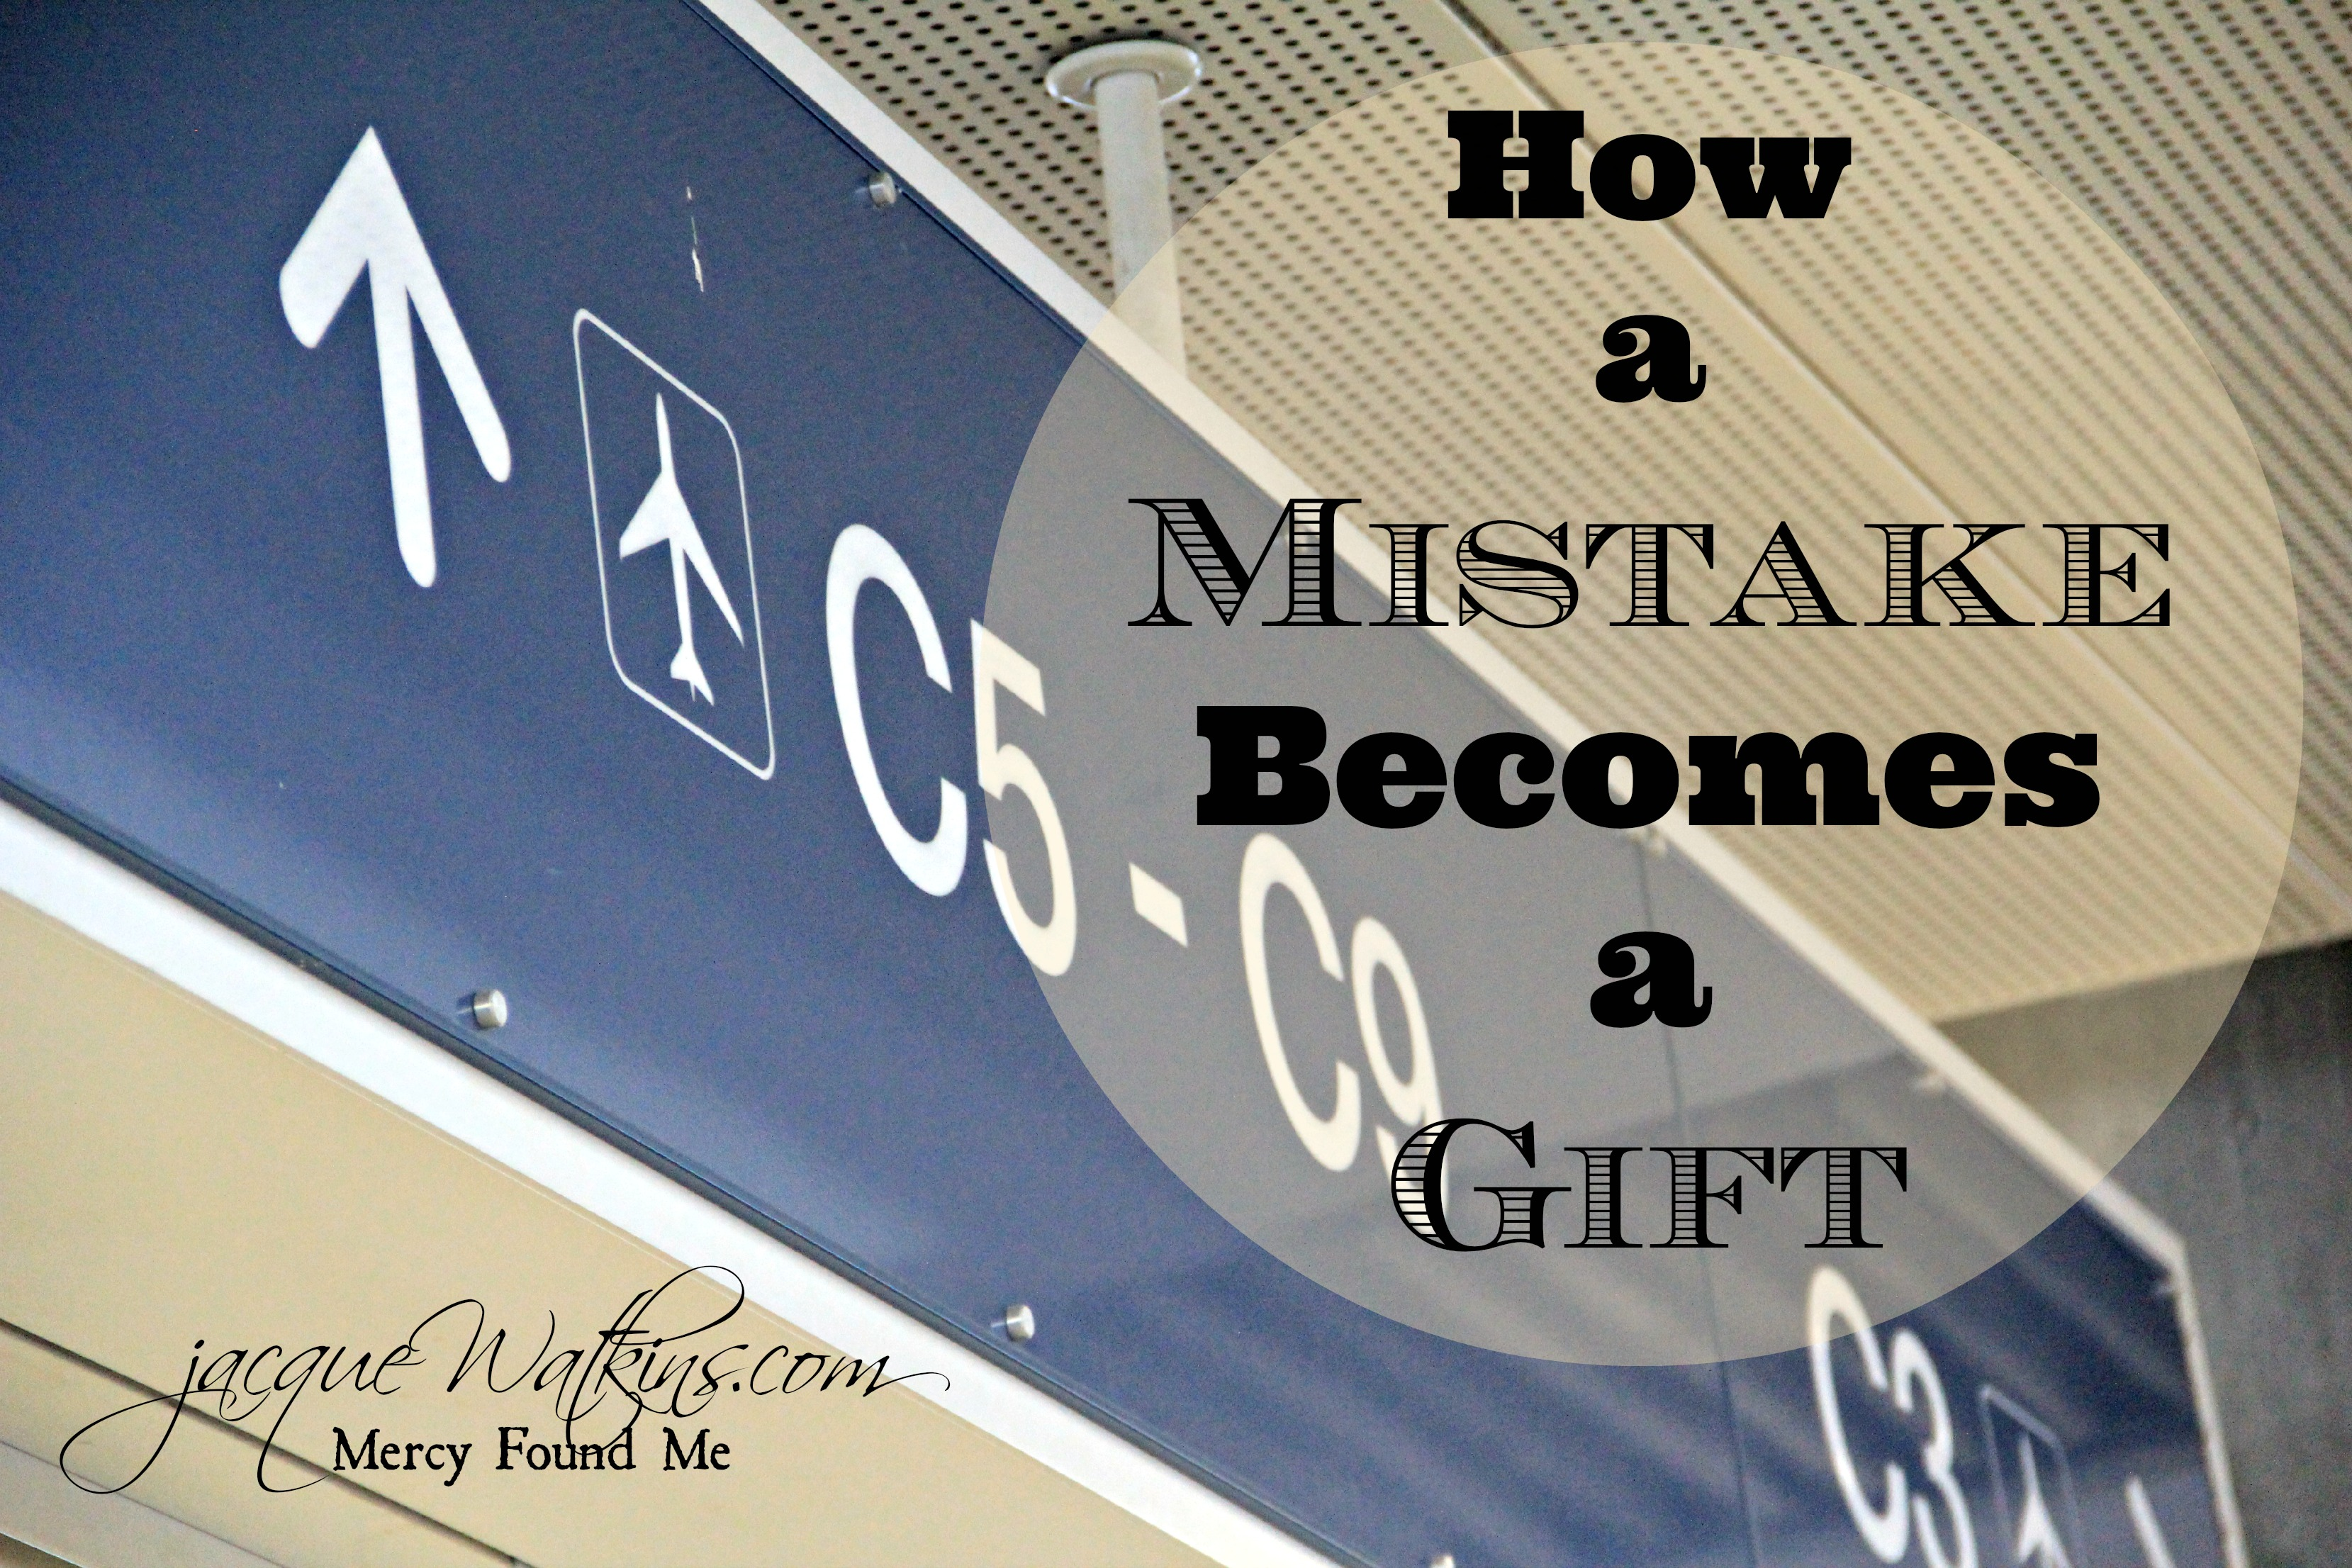 How a Mistake Becomes a Gift